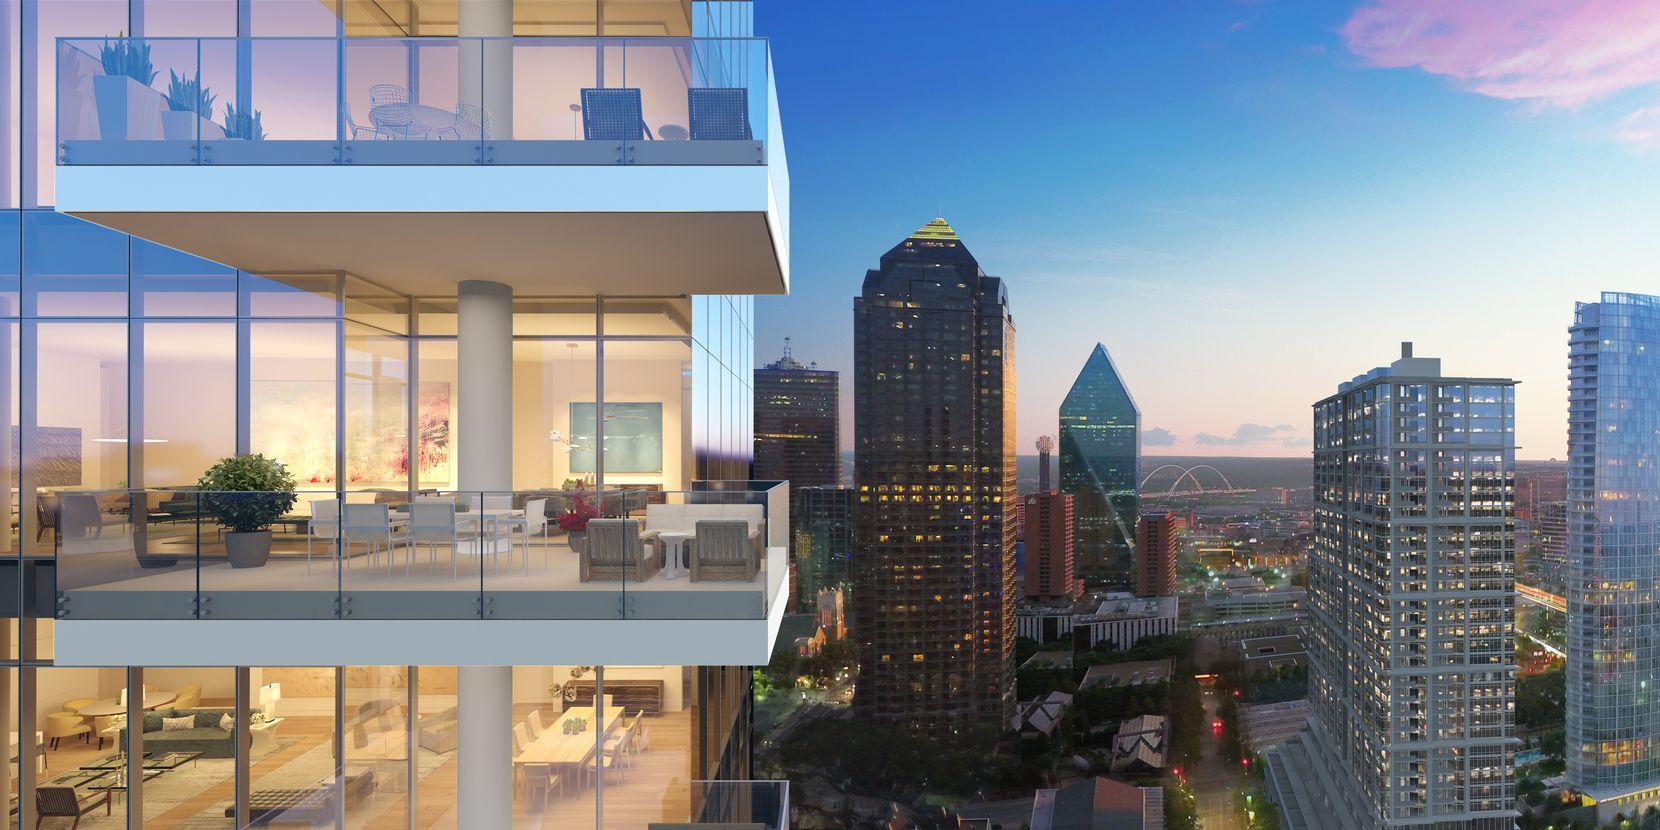 Condos in the Hall Arts Residences tower will start at around $2 million.